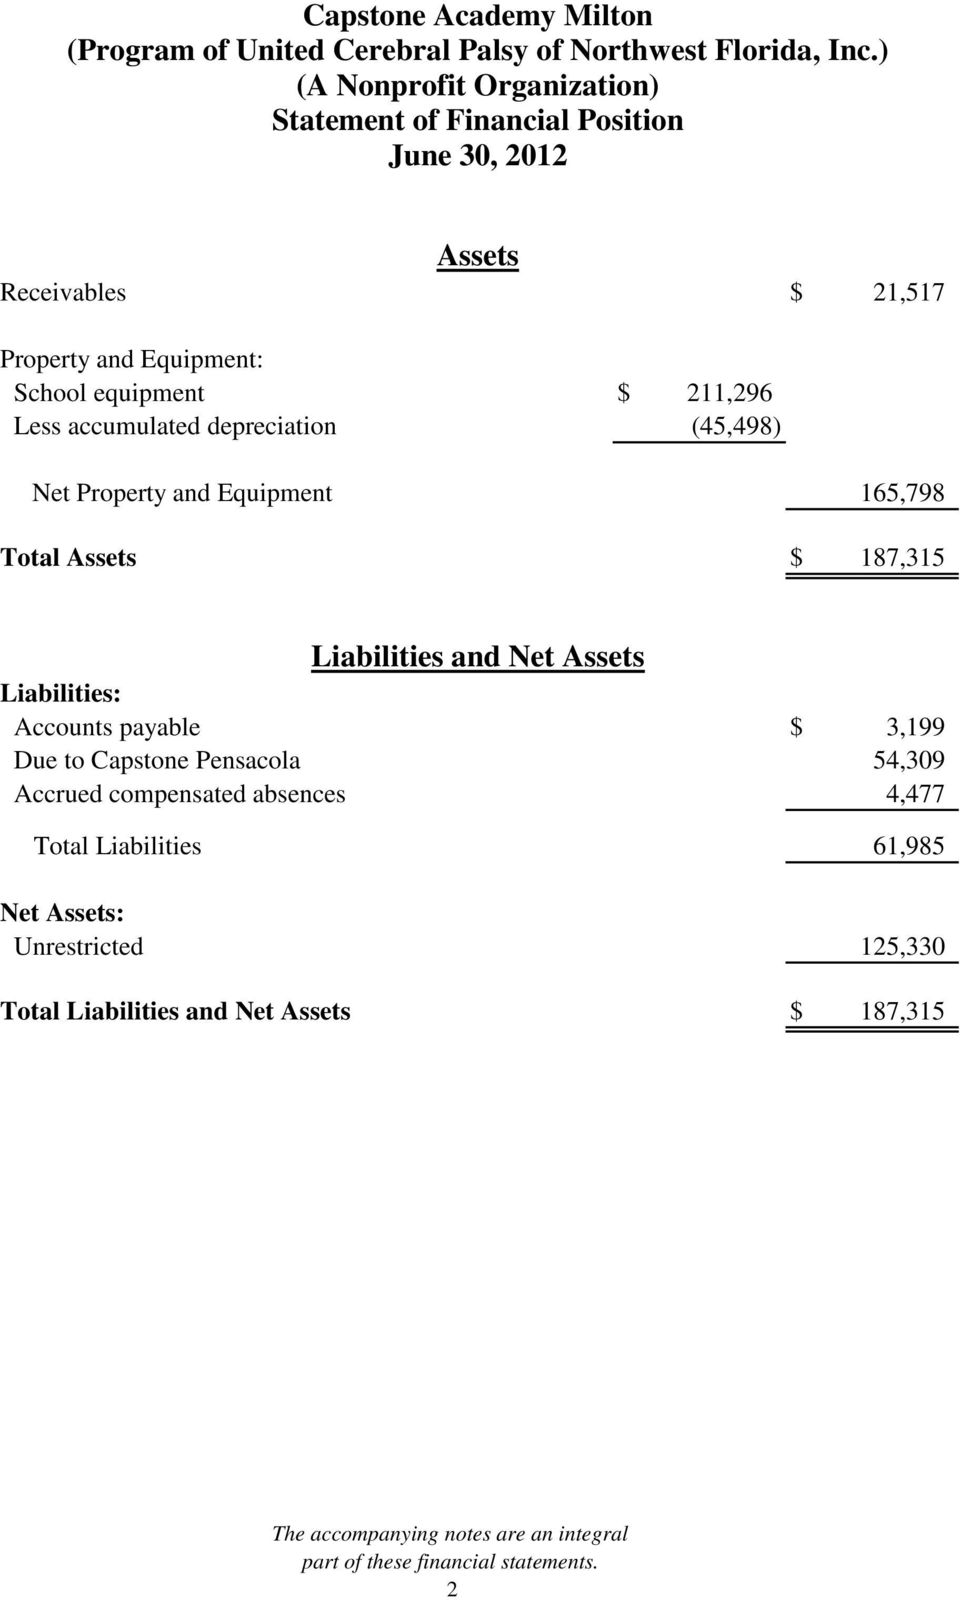 payable $ 3,199 Due to Capstone Pensacola 54,309 Accrued compensated absences 4,477 Total Liabilities 61,985 Net Assets: